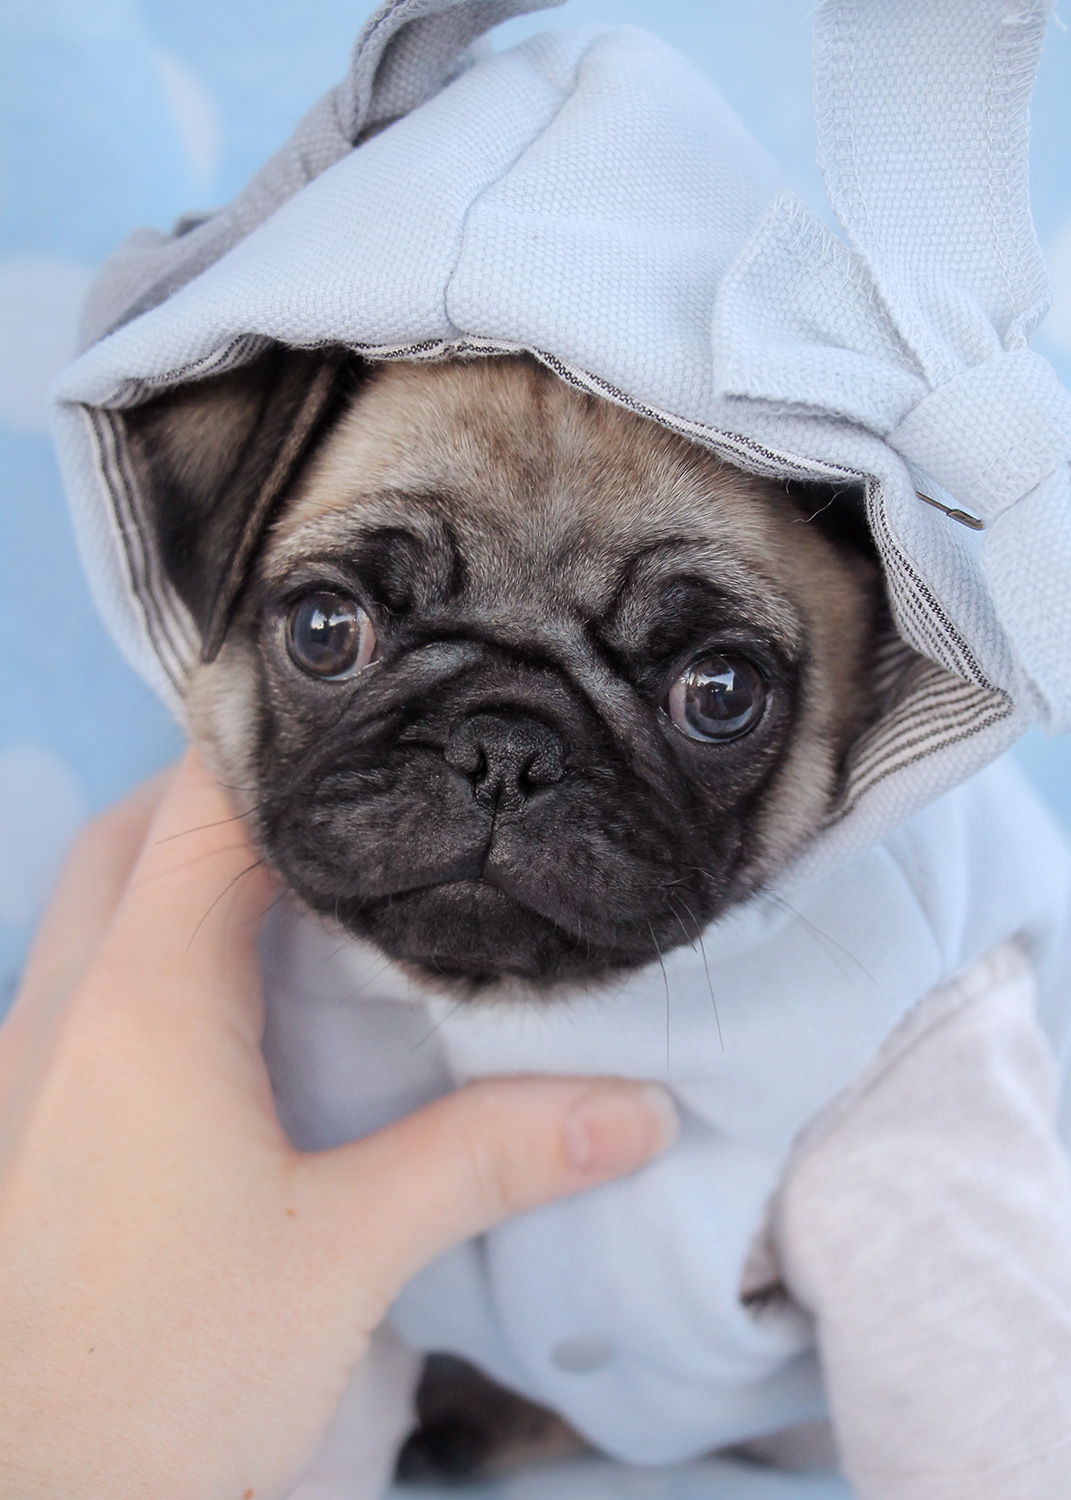 Pug Puppies For Sale in Miami / Fort Lauderdale FL | Teacups